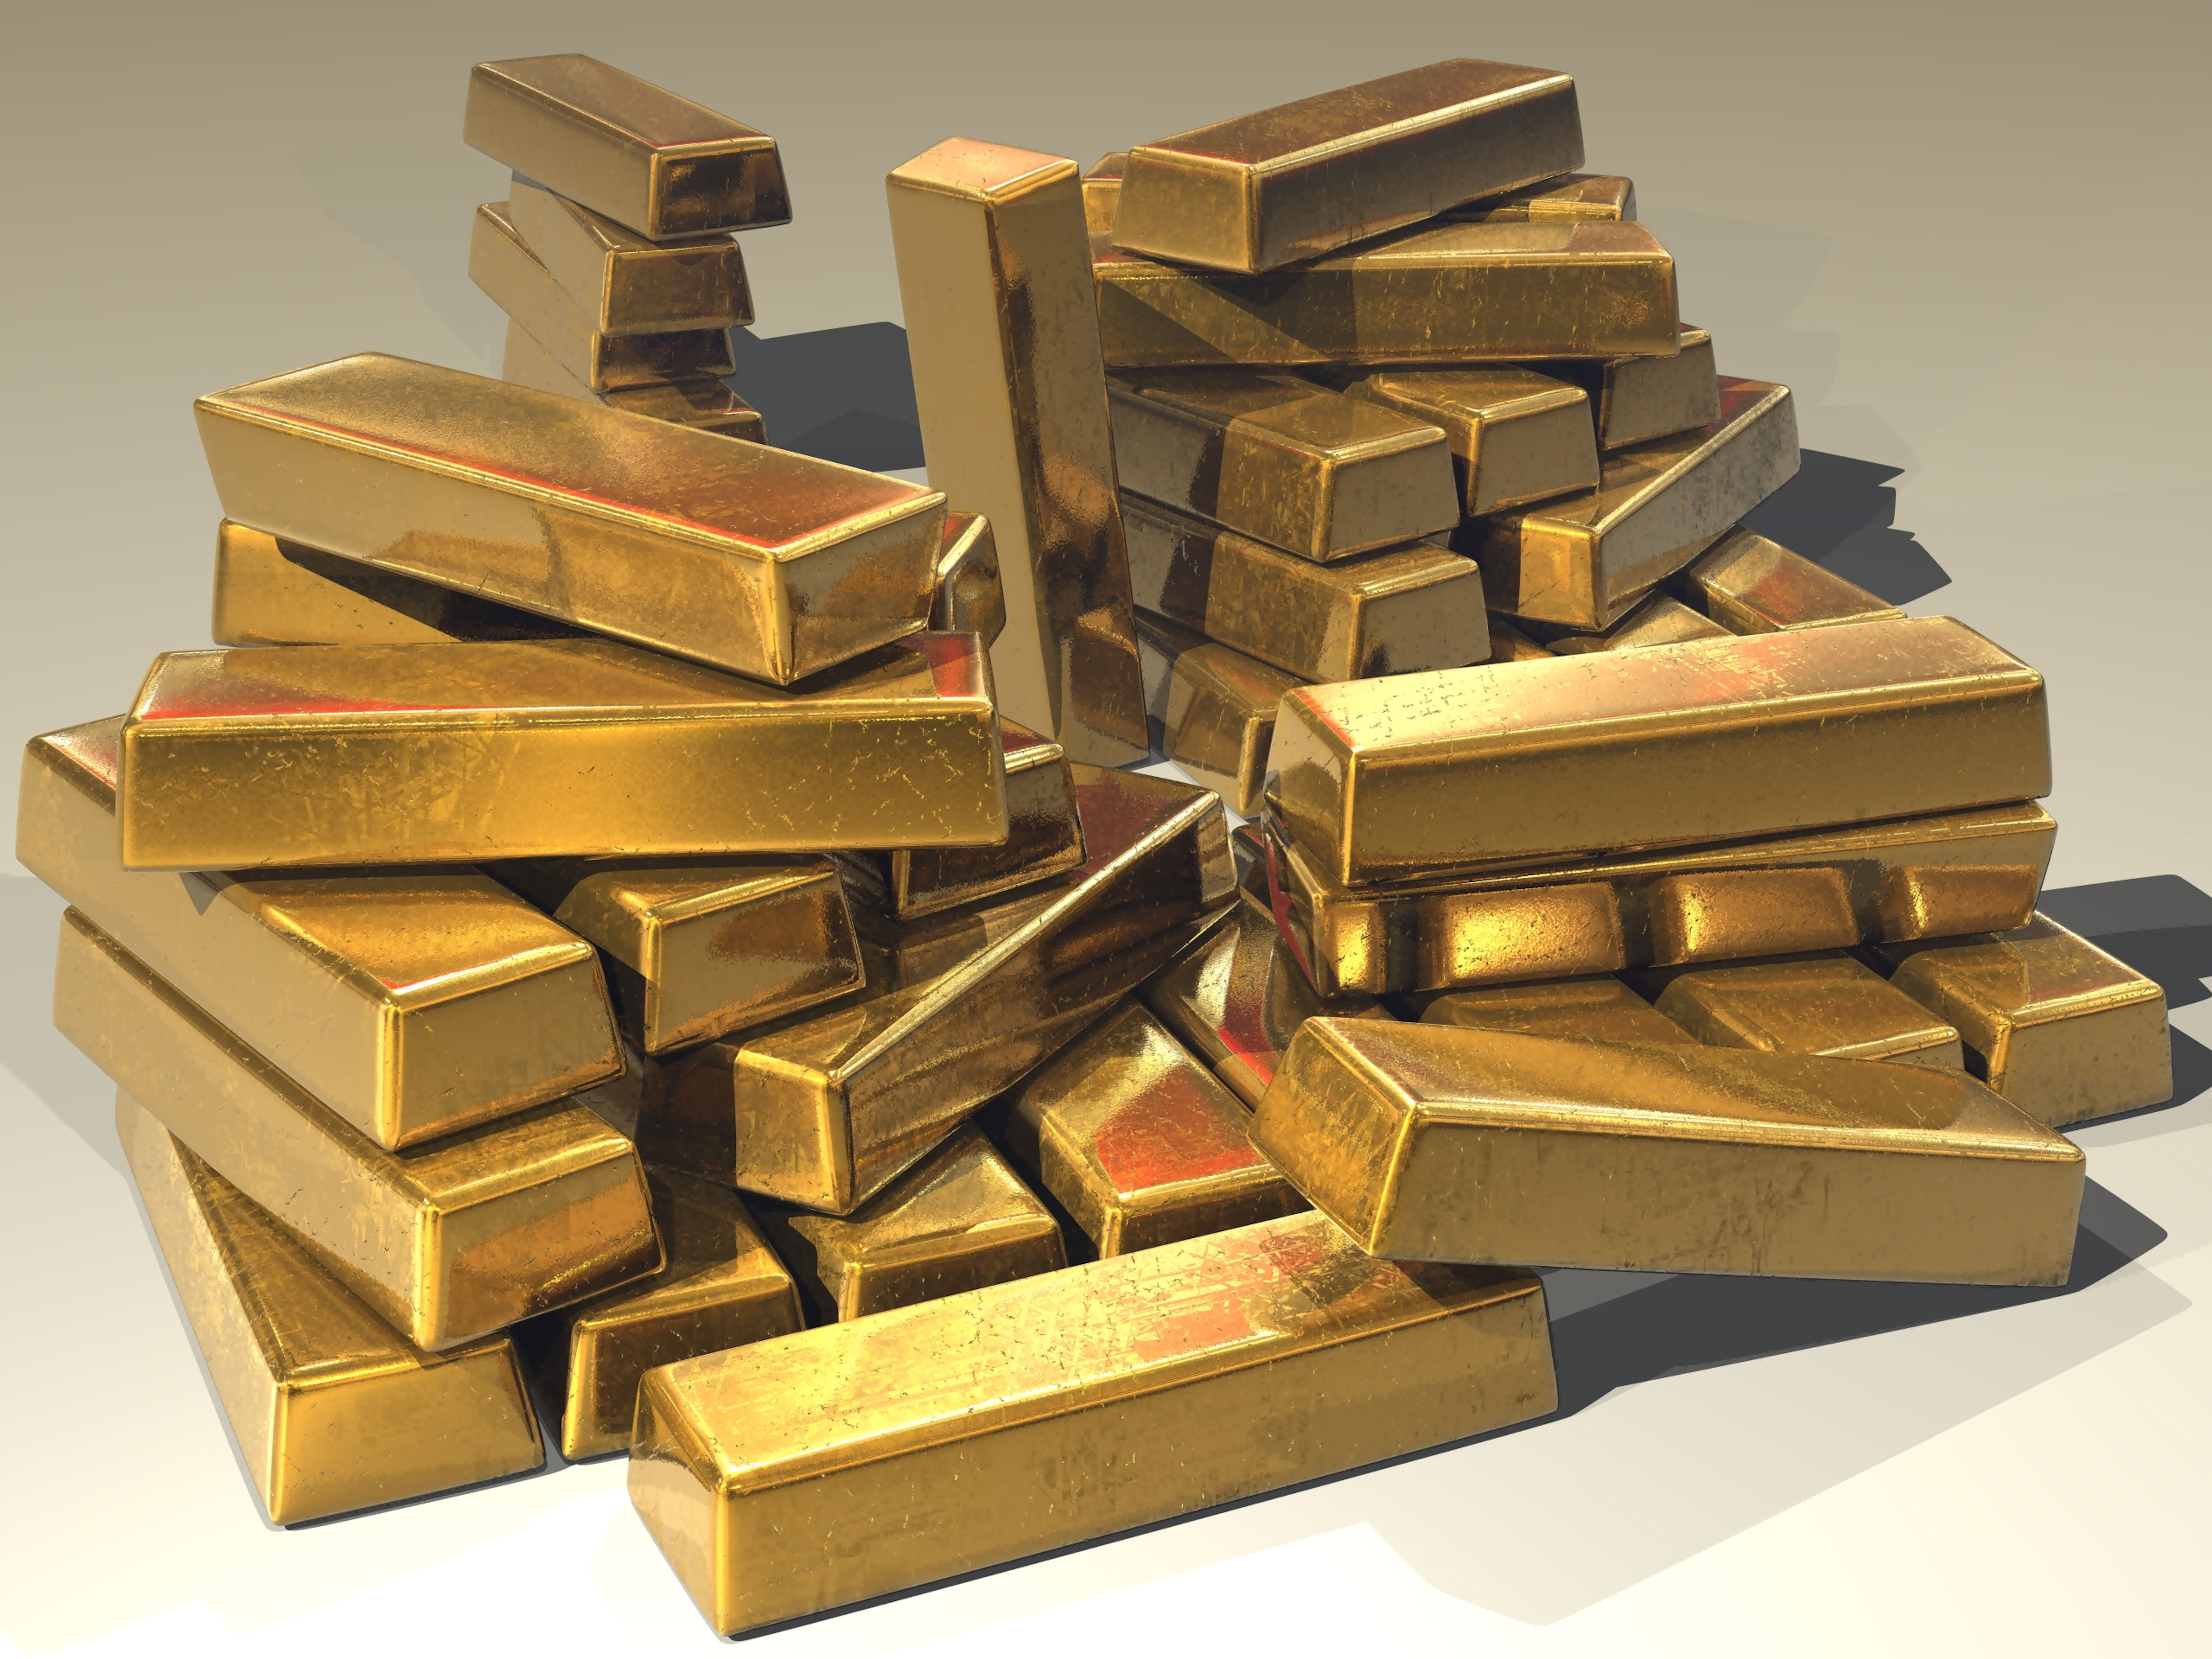 Large pile of gold bars stacked on each other randomly